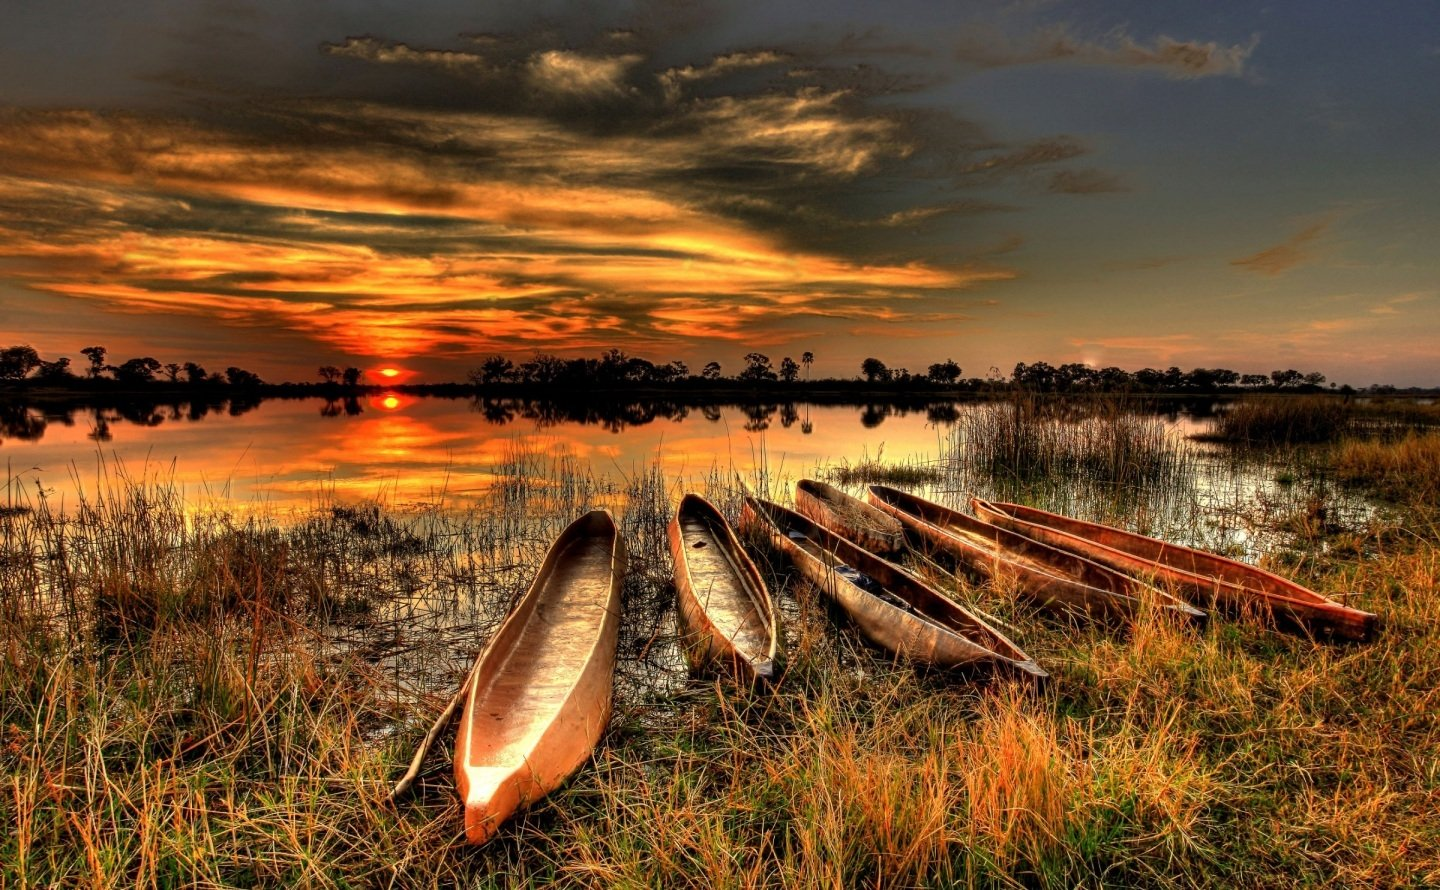 Botswana Wallpapers High Quality Download 1440x890